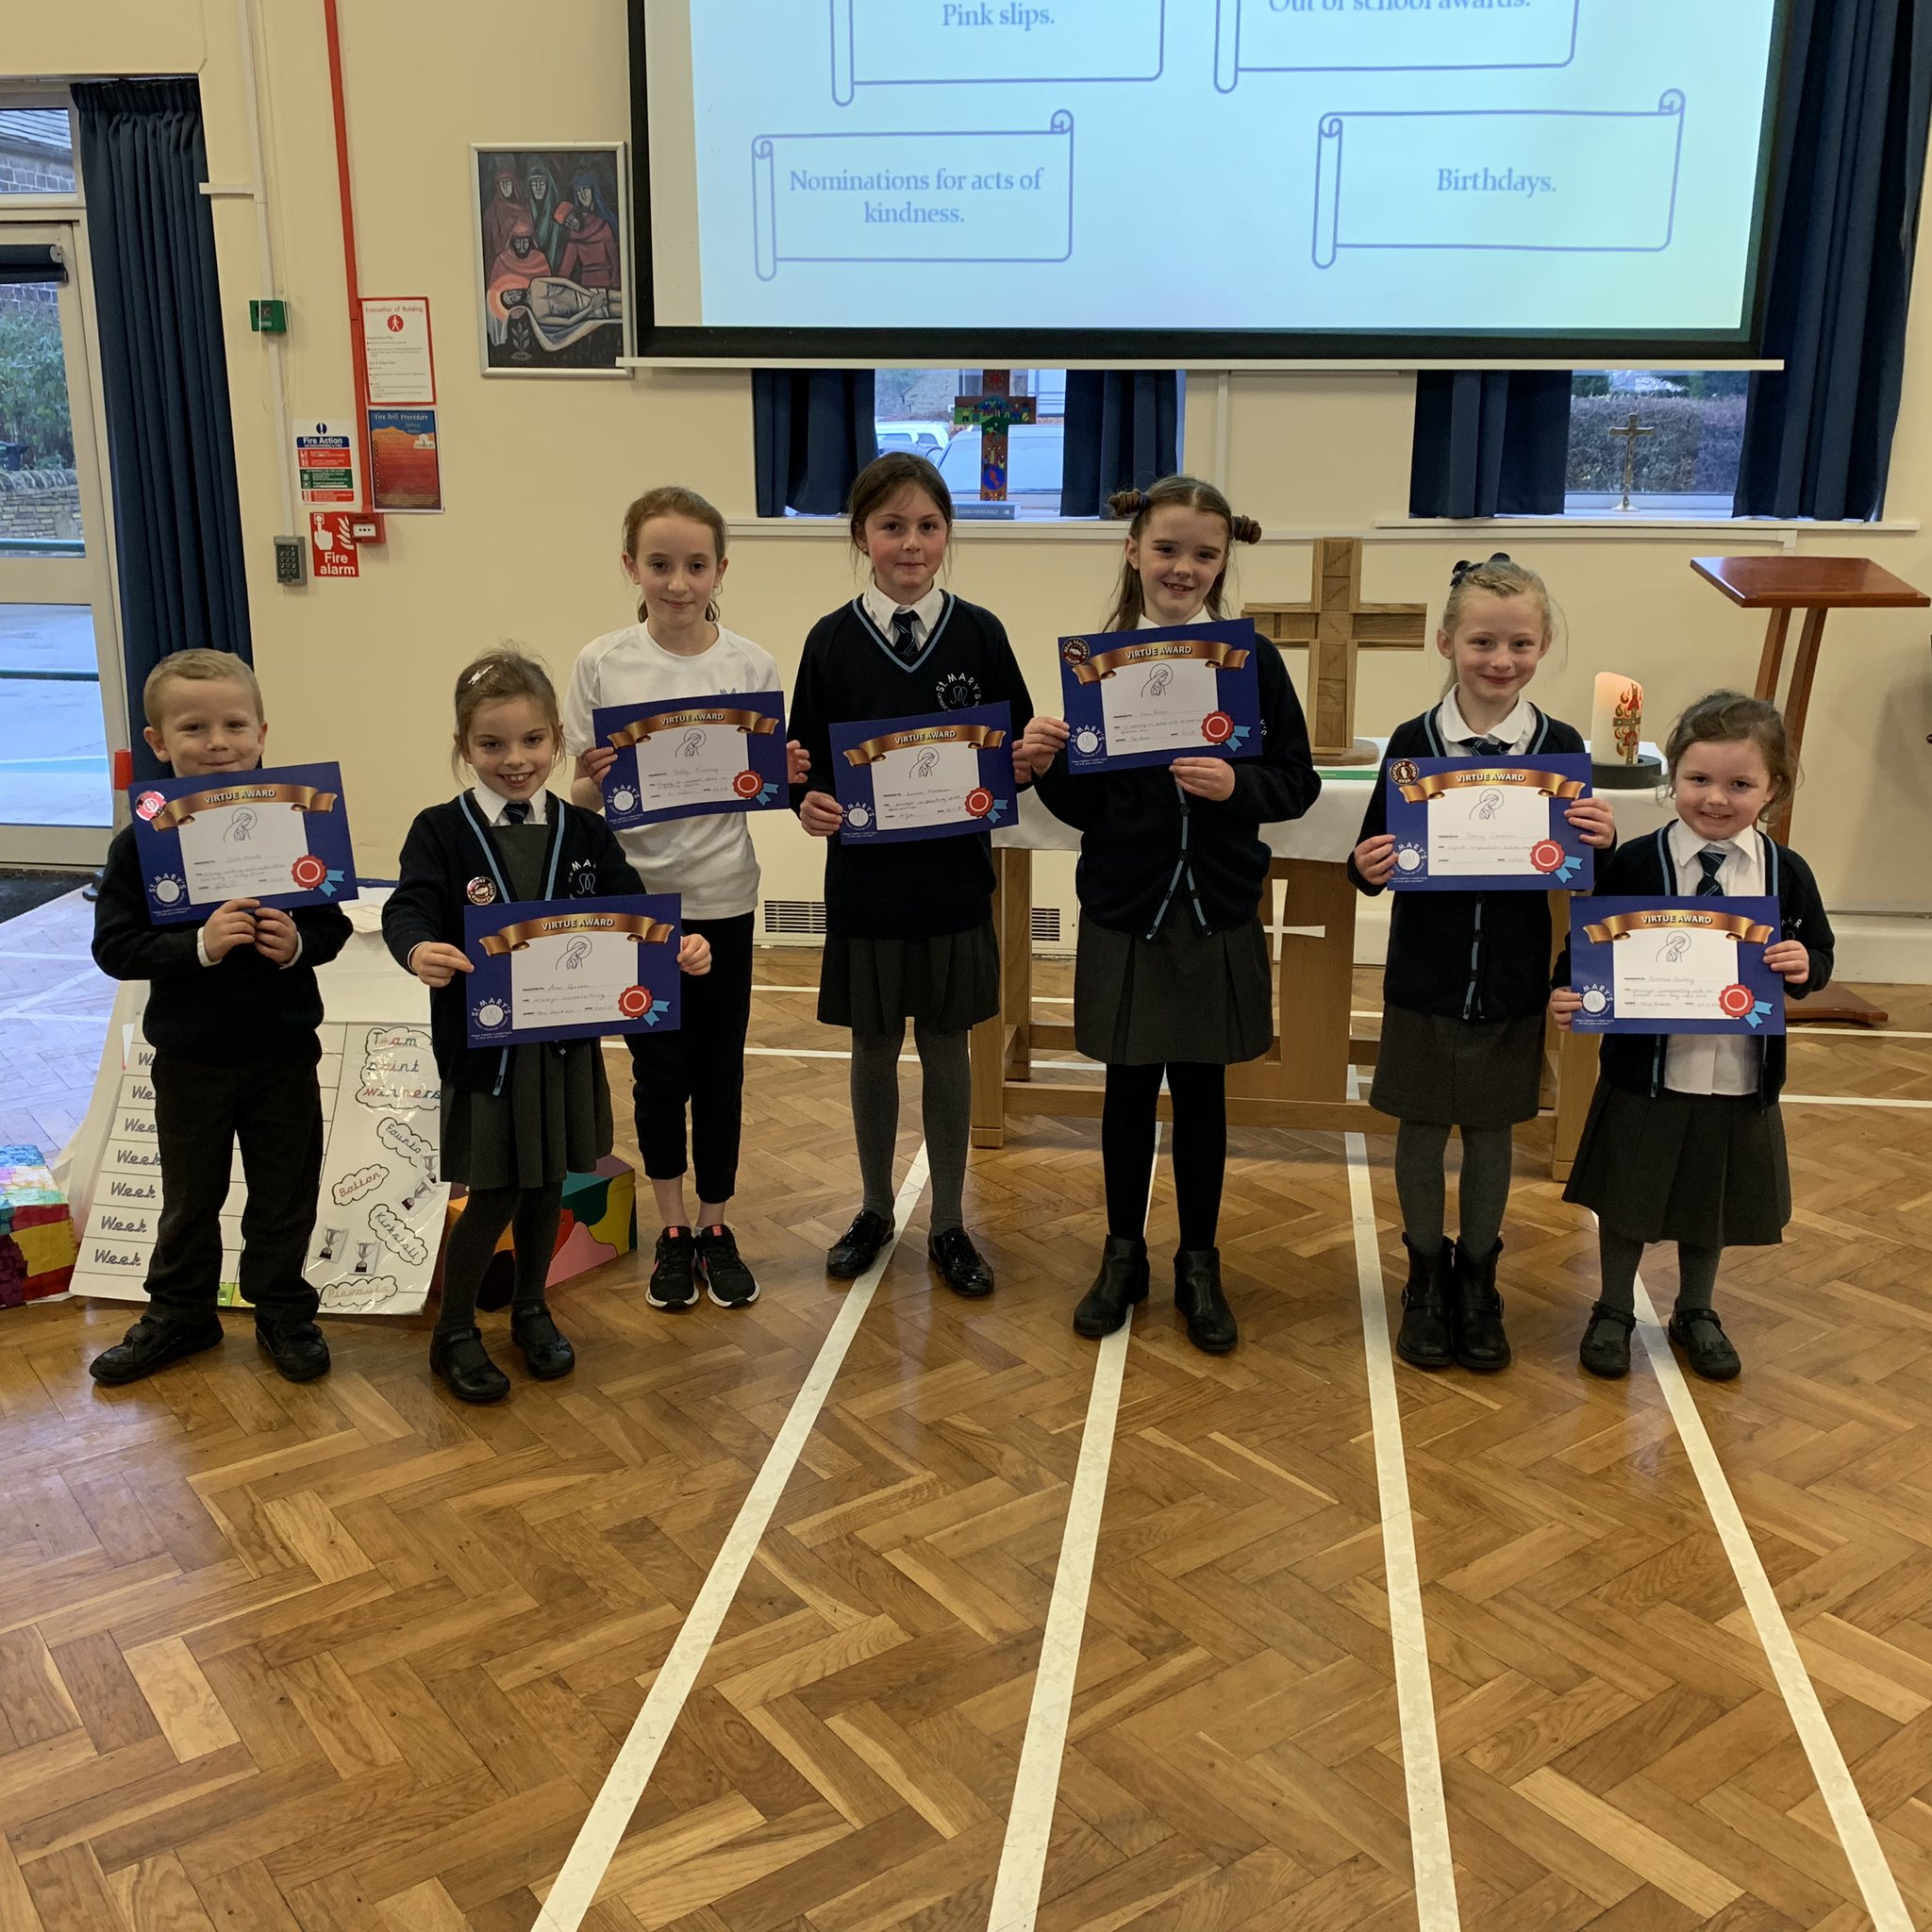 Photo: Children with Virtue Awards at Friday's assembly. This week's focus was on co-operation.